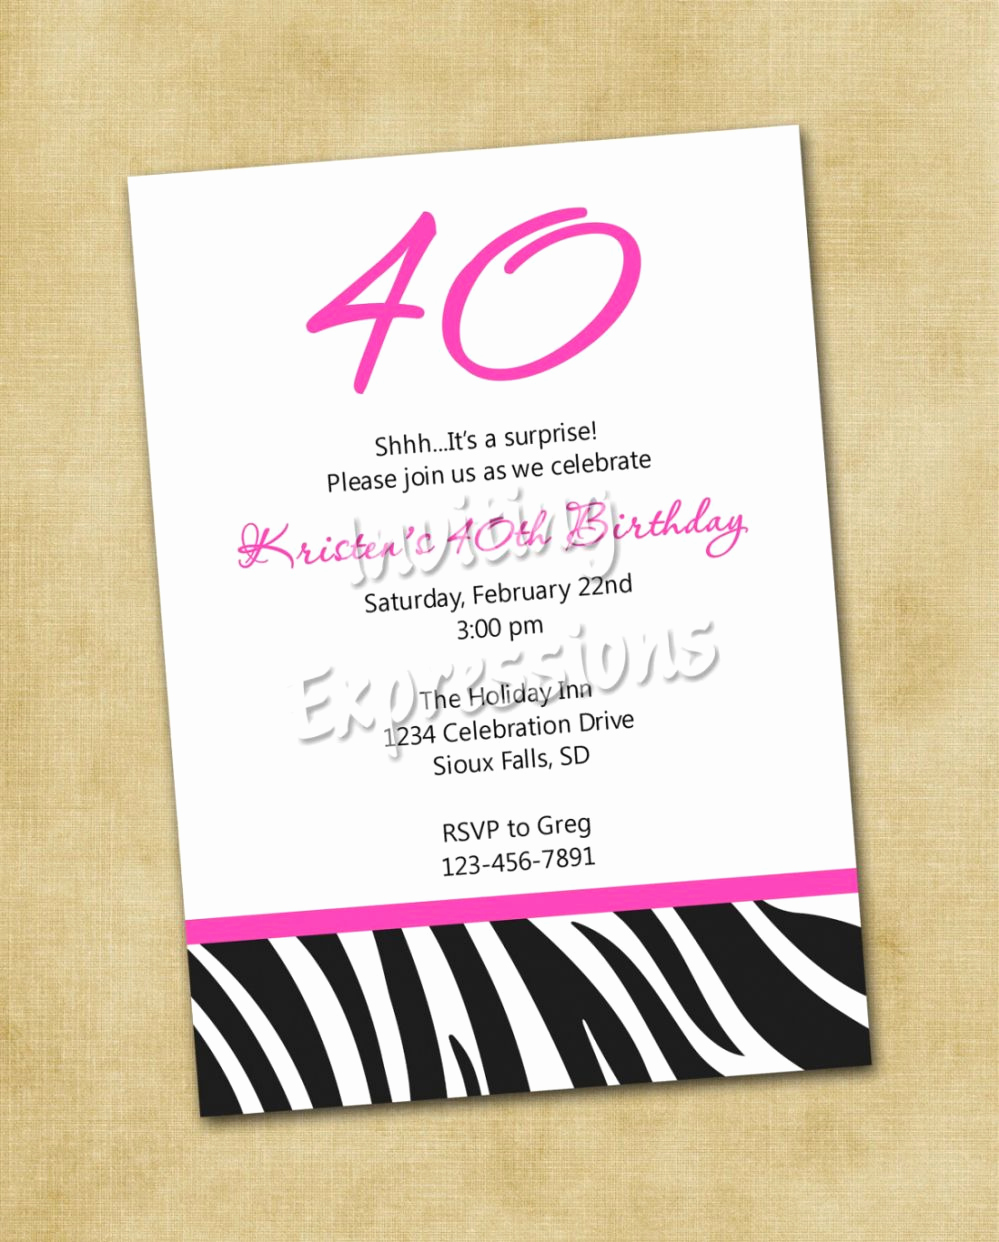 40th Birthday Party Invitation Wording Beautiful Best 2018 40th Invite Wording New 2018